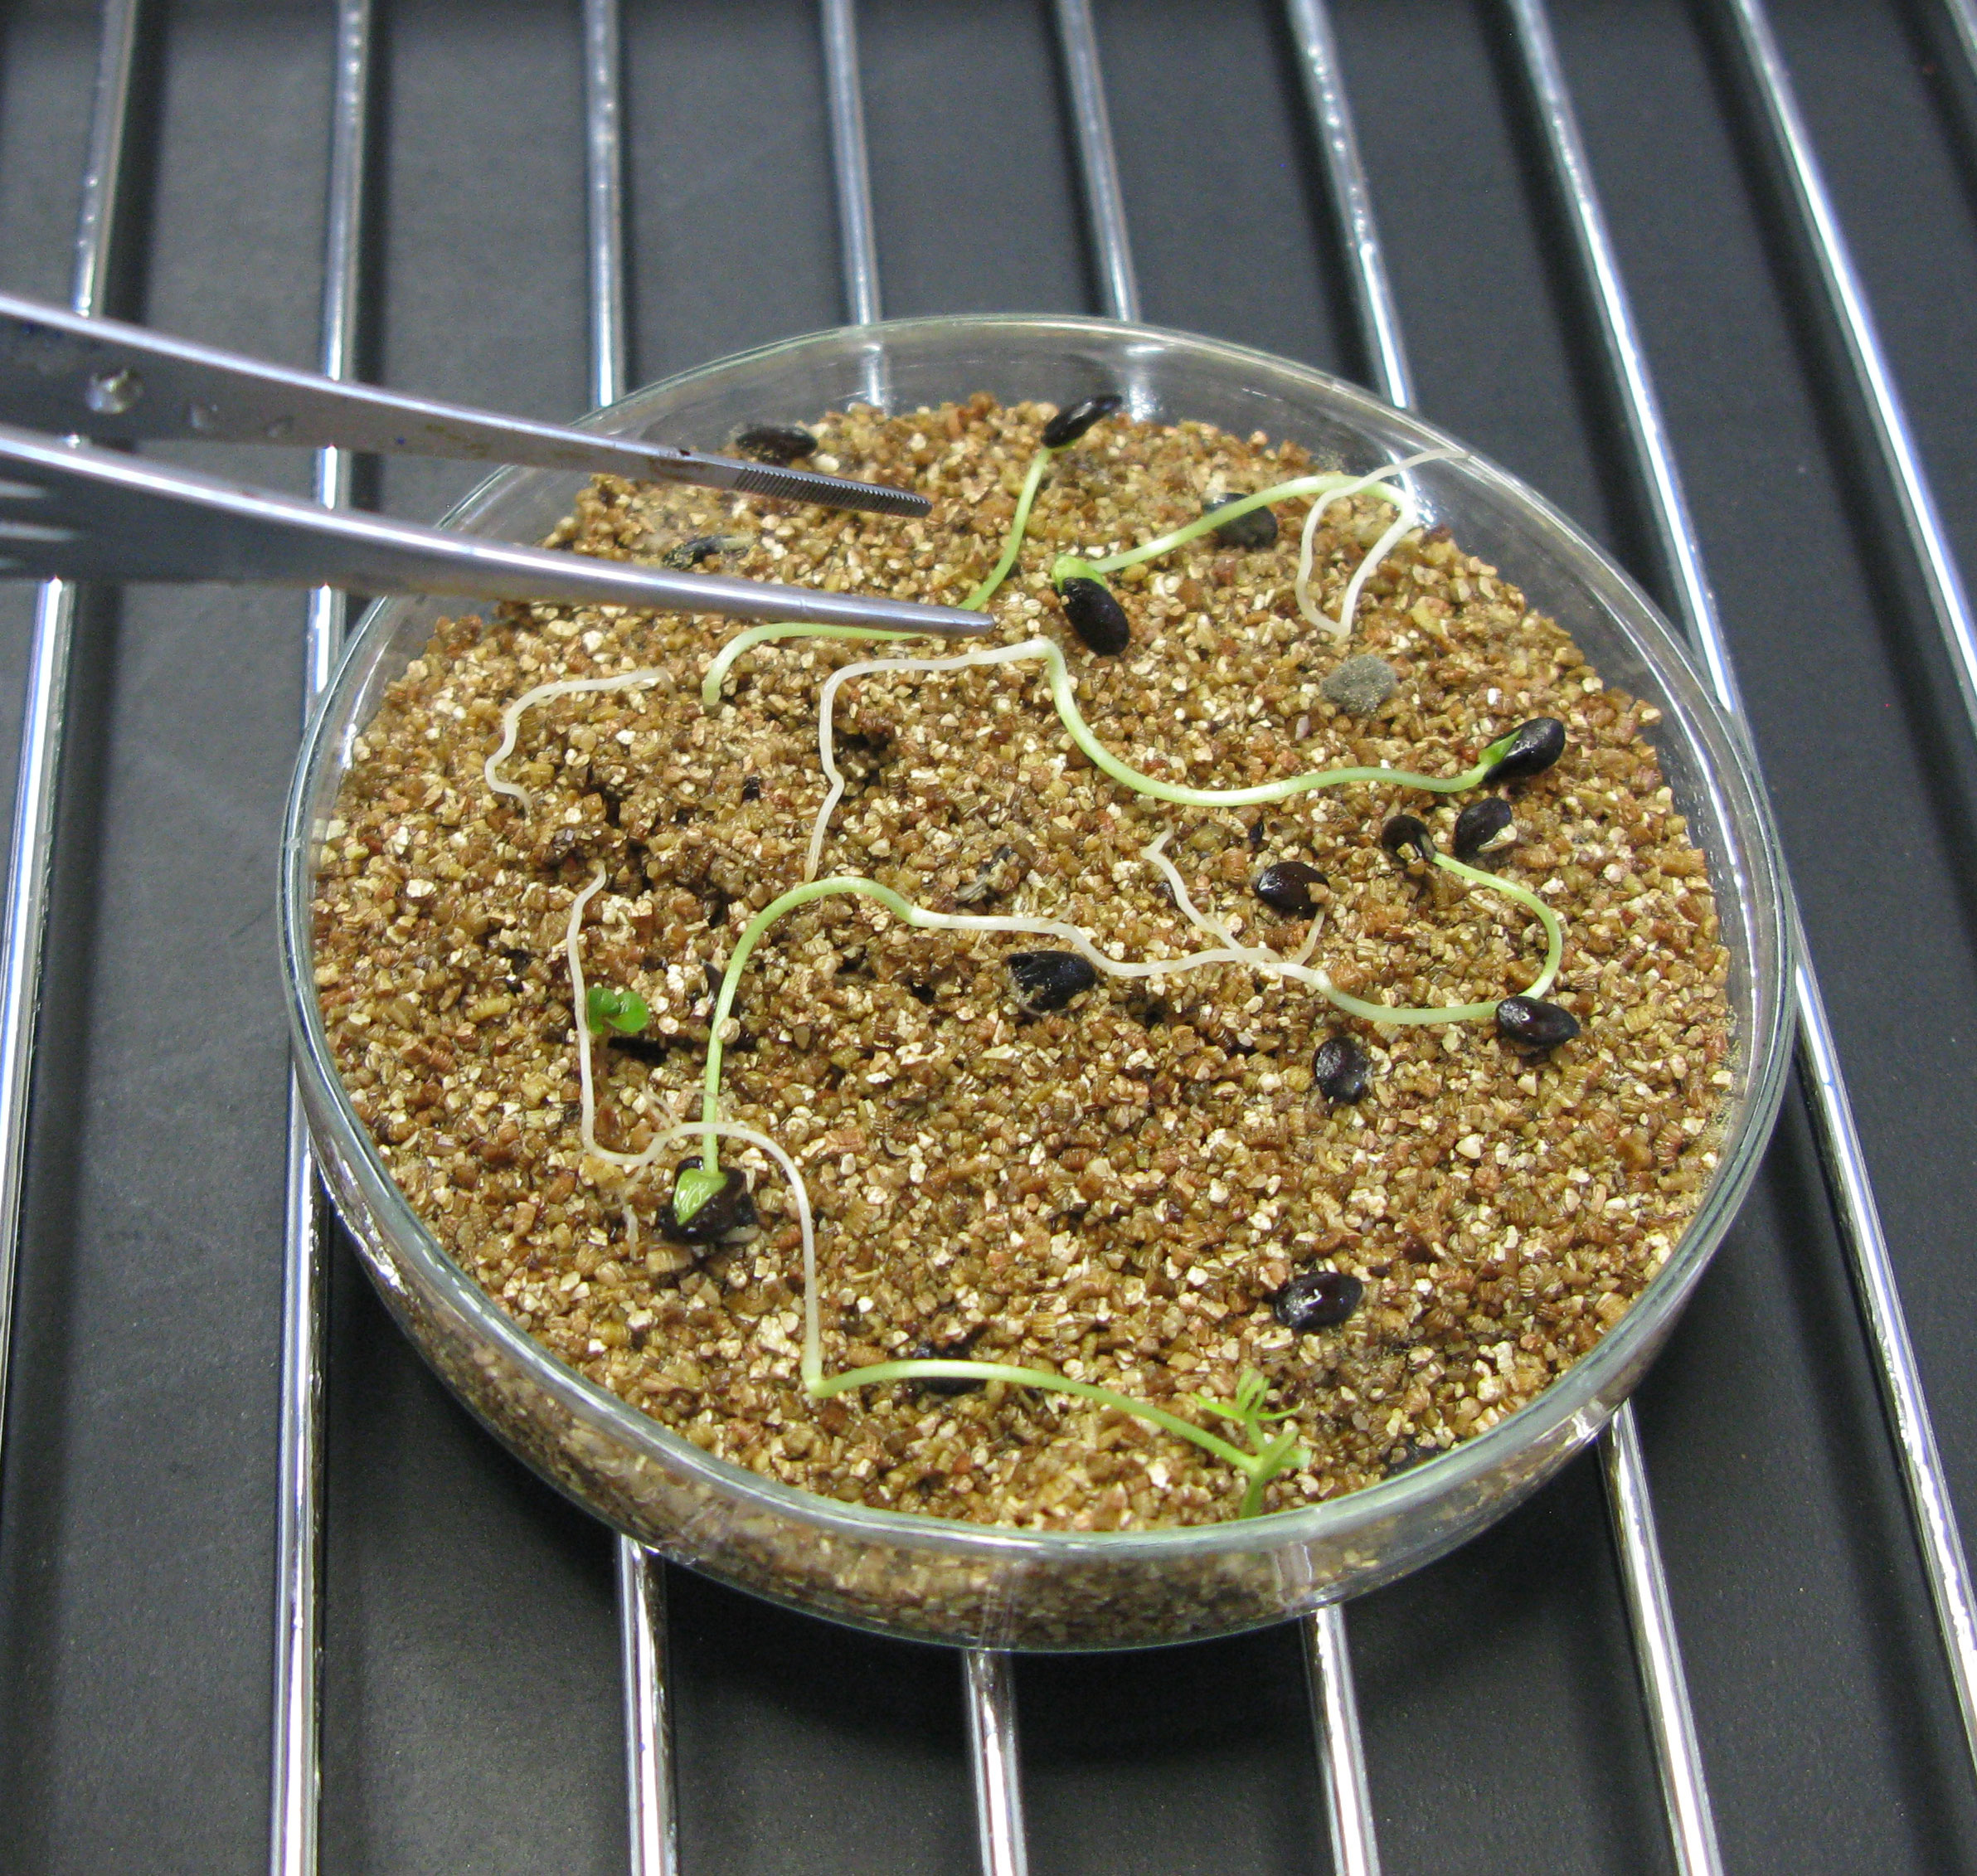 petri dish with germinating Acacia cincinnata seeds.